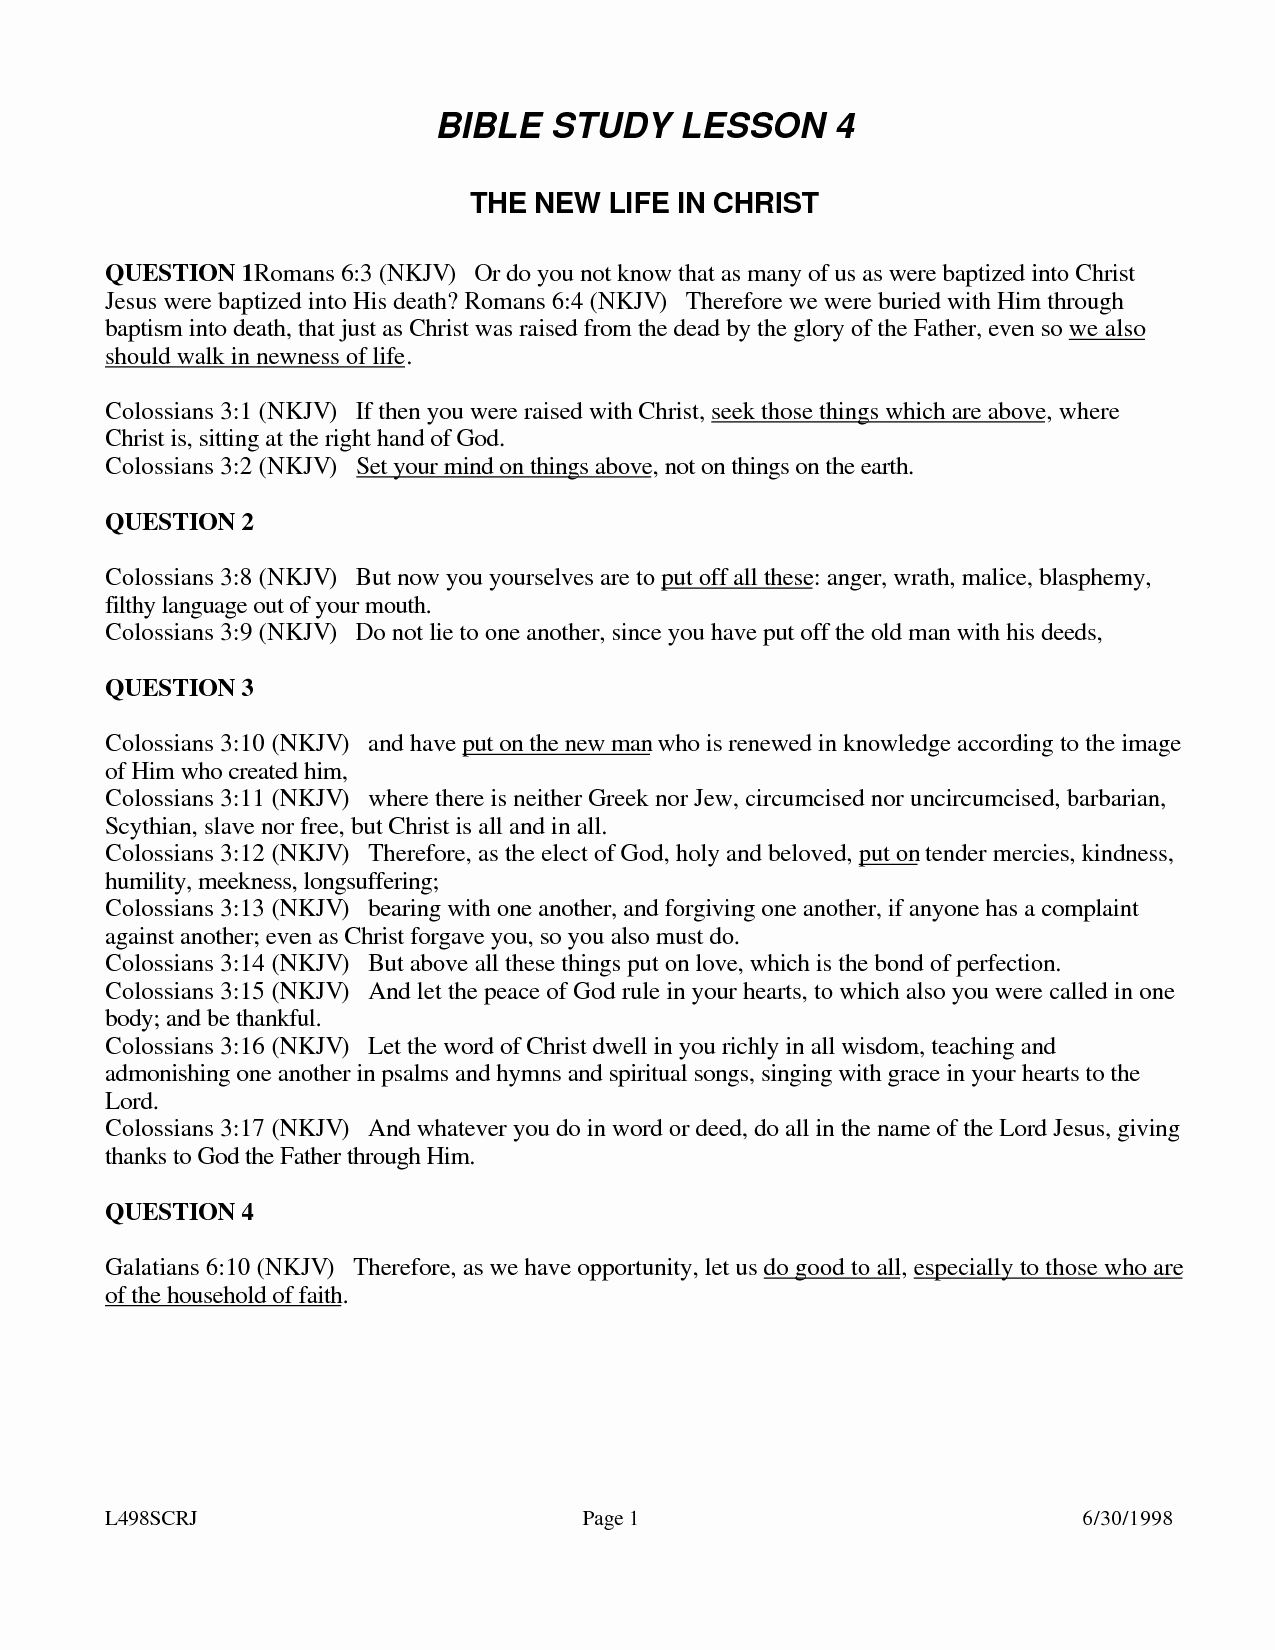 Bible Study Worksheets For Adults – Aggelies-Online.eu - Free Printable Youth Bible Study Lessons